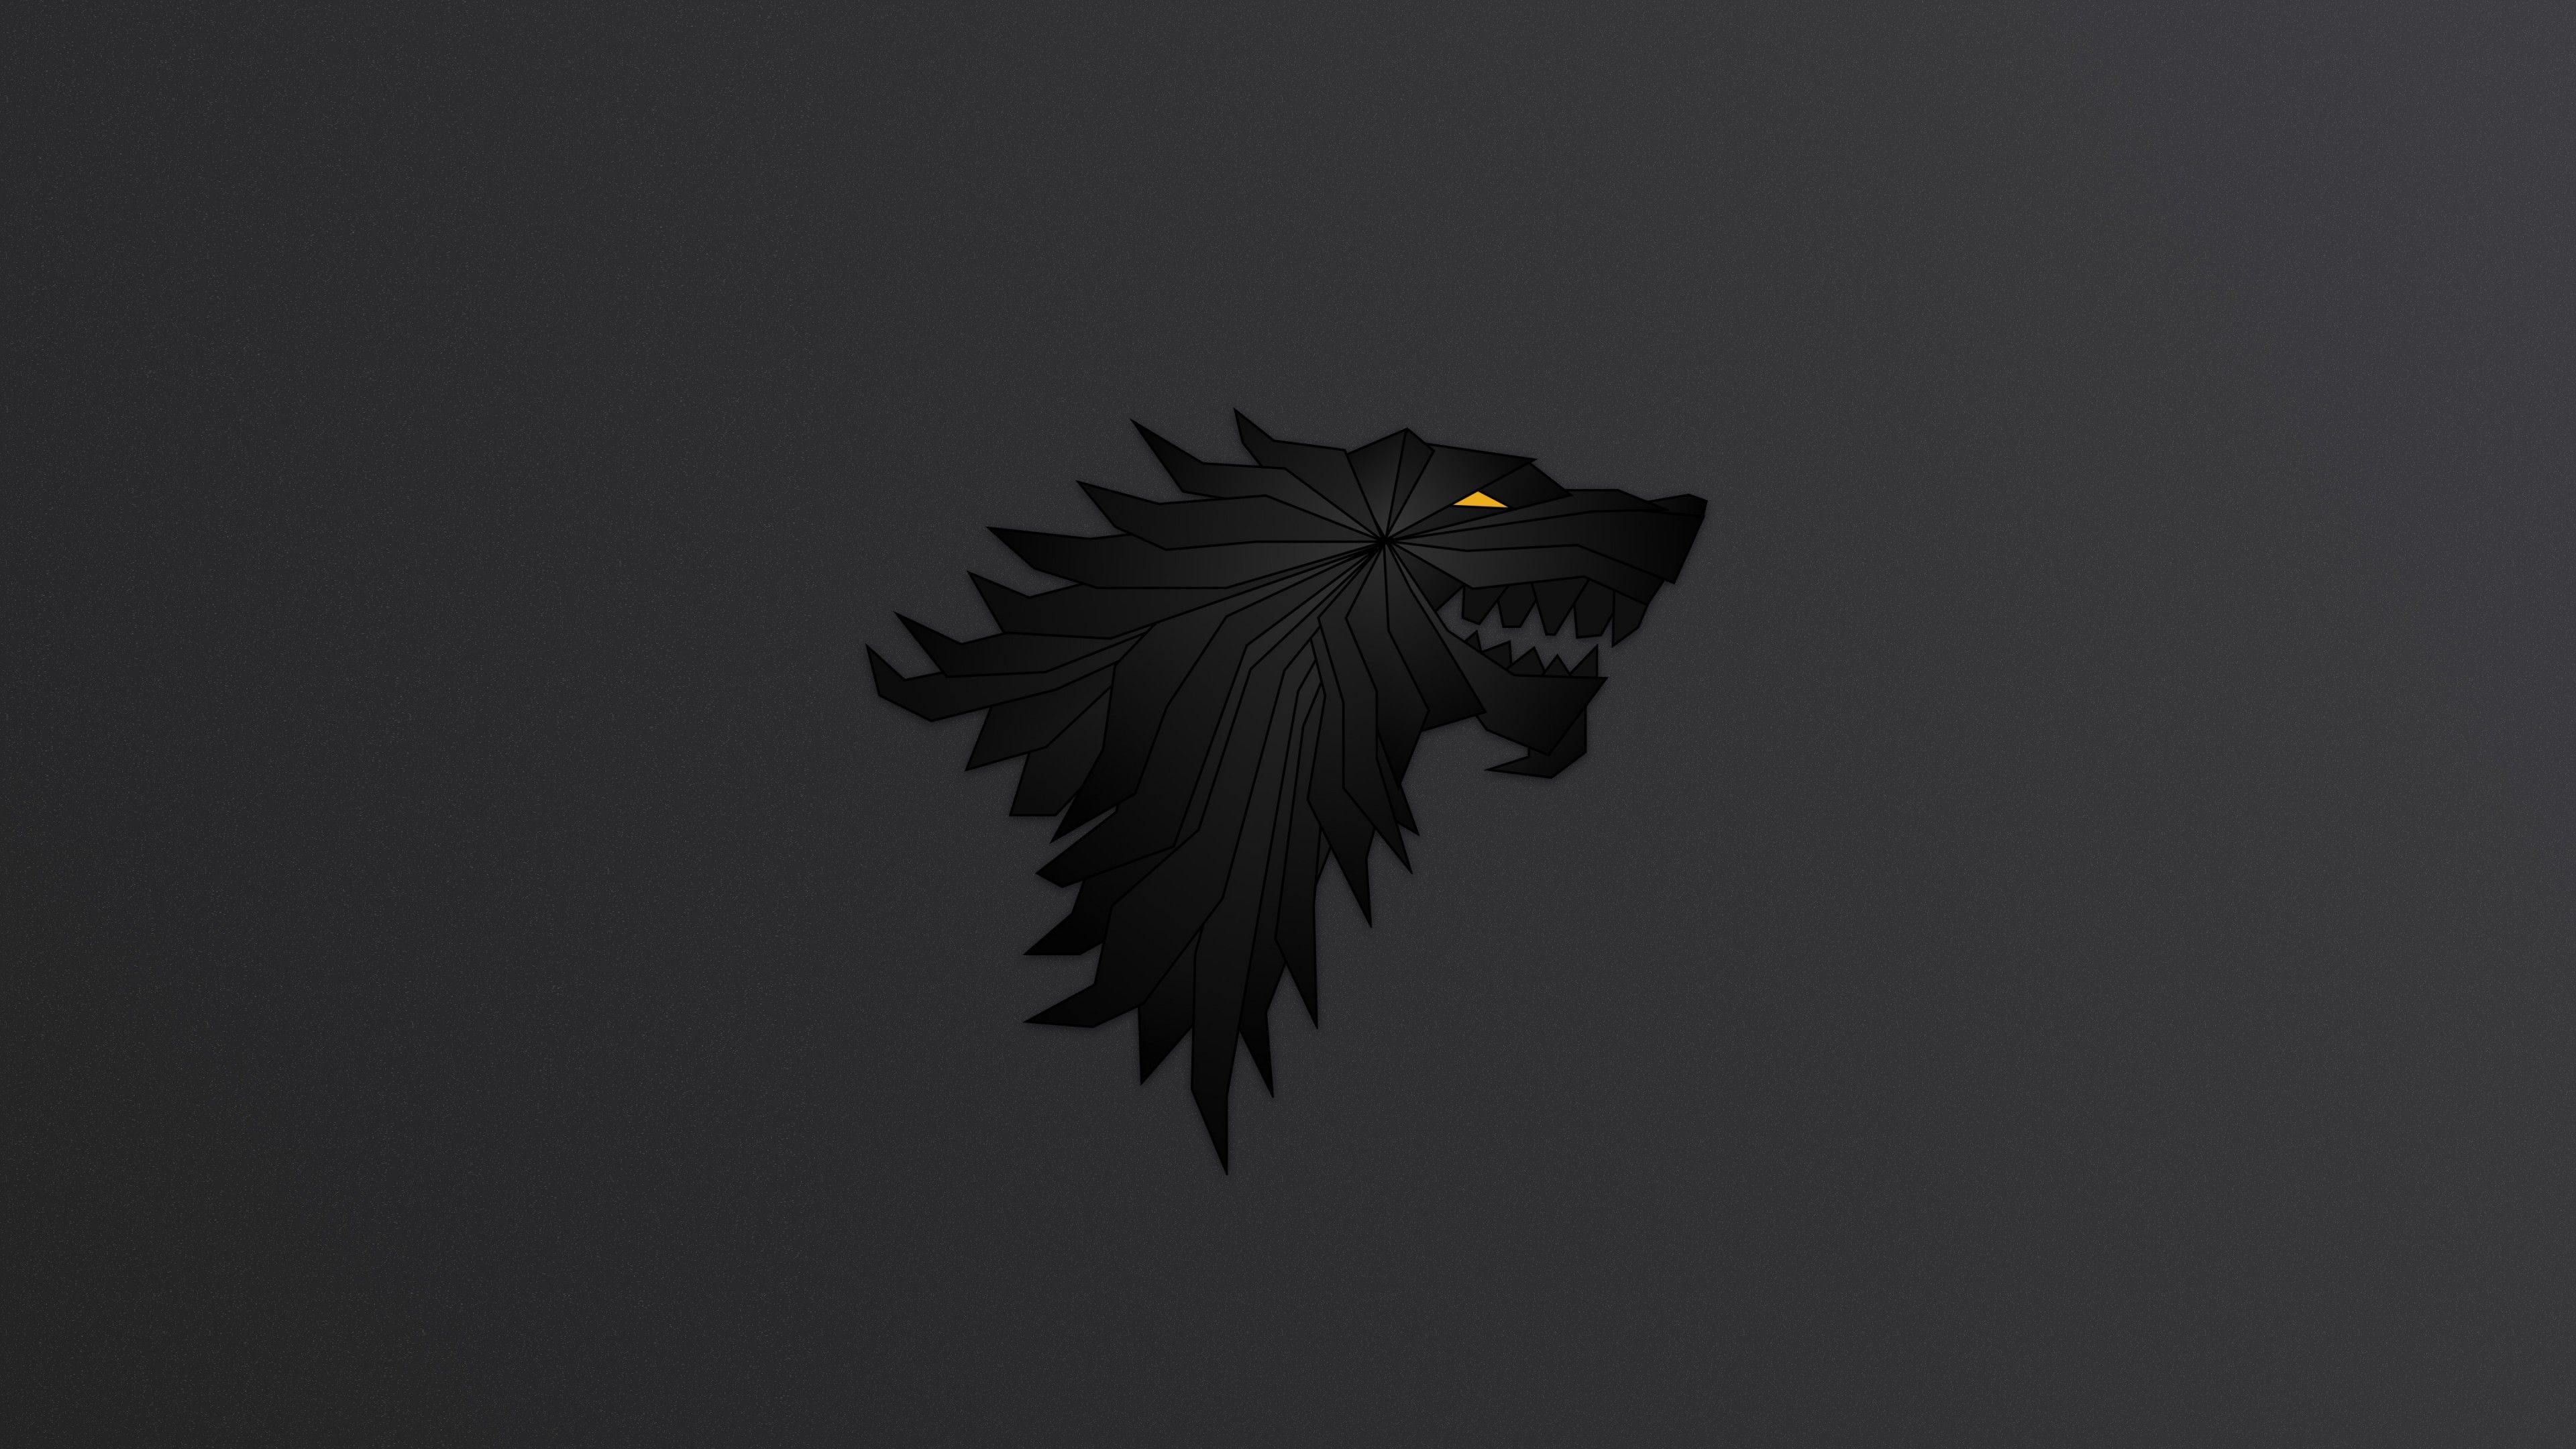 Game Of Thrones Minimalist Wallpapers Top Free Game Of Thrones